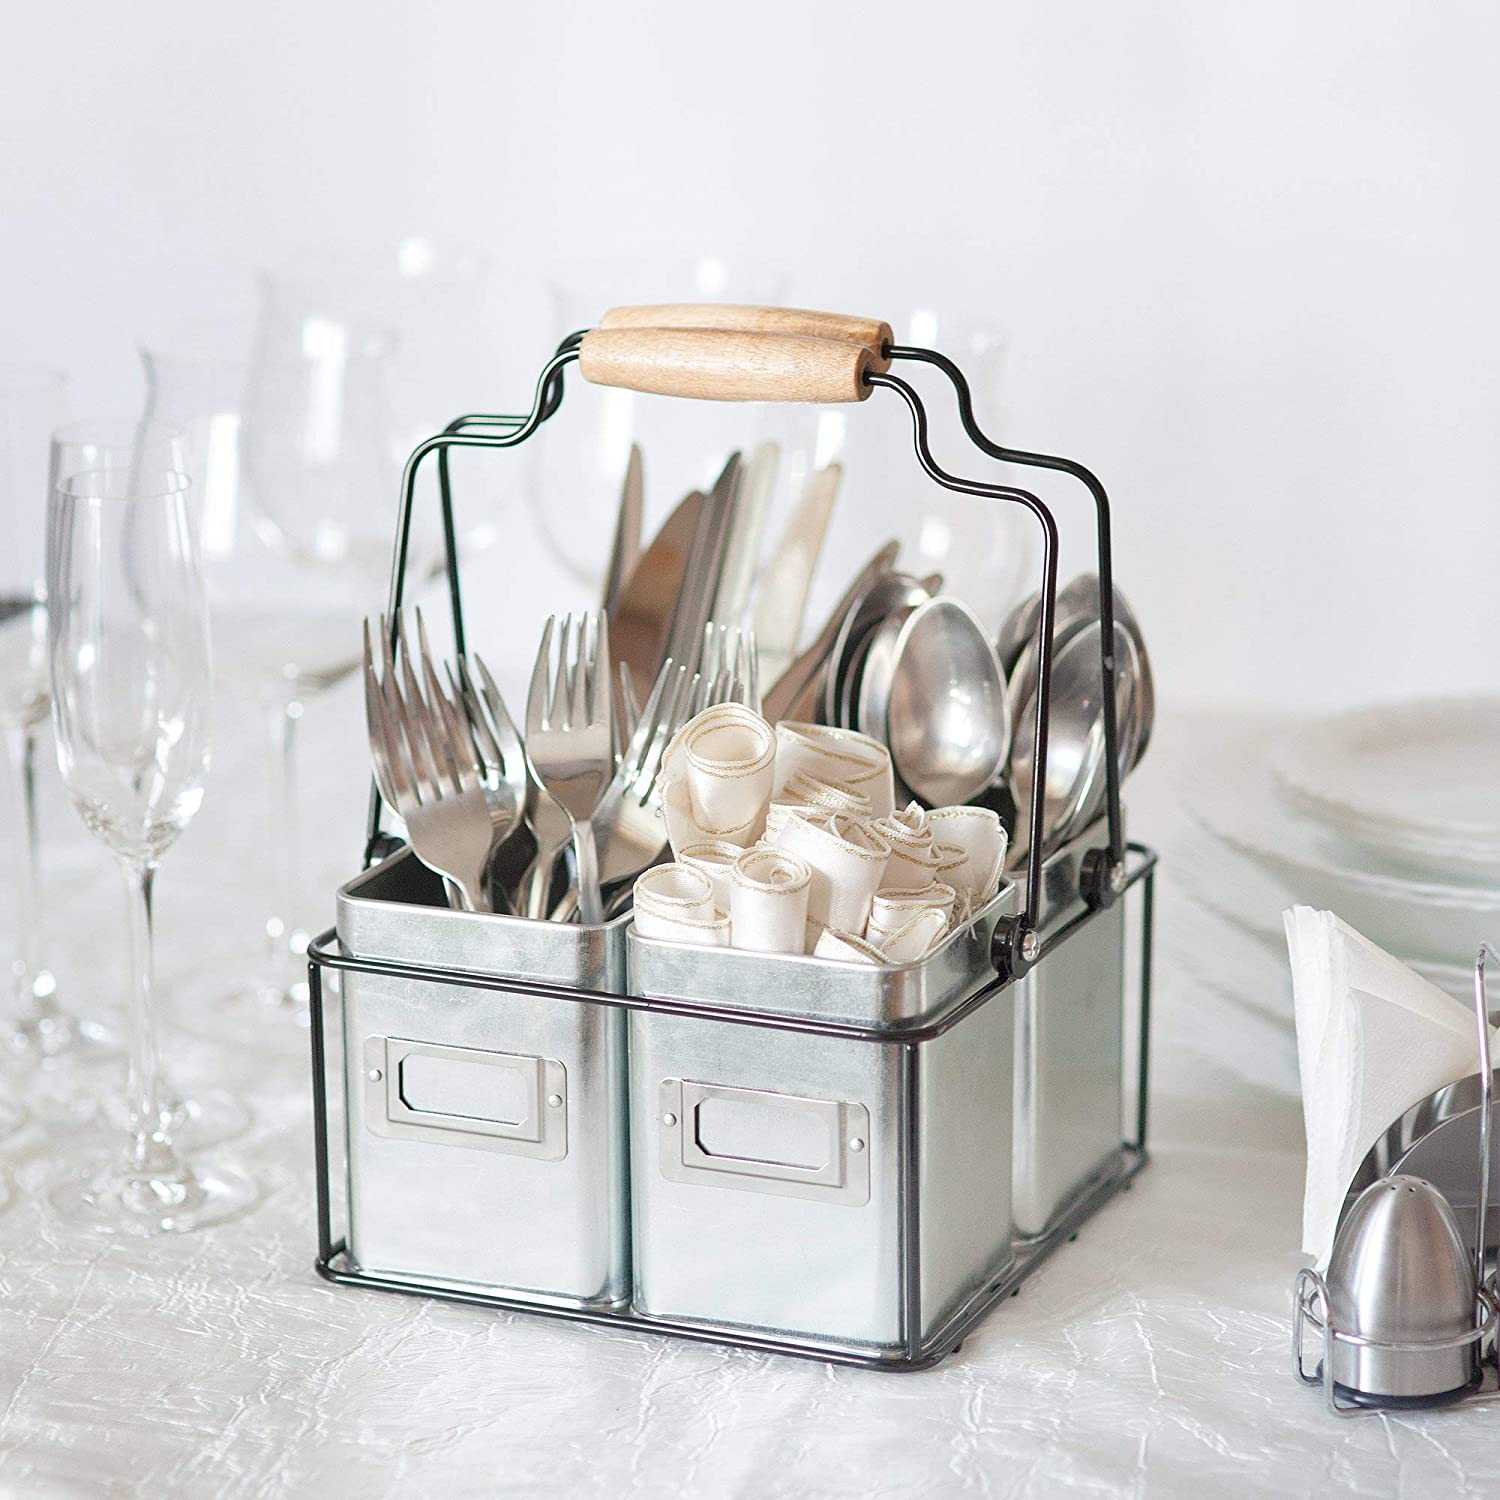 Kenley Galvanized Tin Caddy - Utensil Holder Organizer for Kids & Art Supplies, Kitchen Silverware, Napkins, Flatware, Condiments - Farmhouse Vintage Rustic Décor Picnic Tray with Handles & Metal Bins tin-101-may-fba